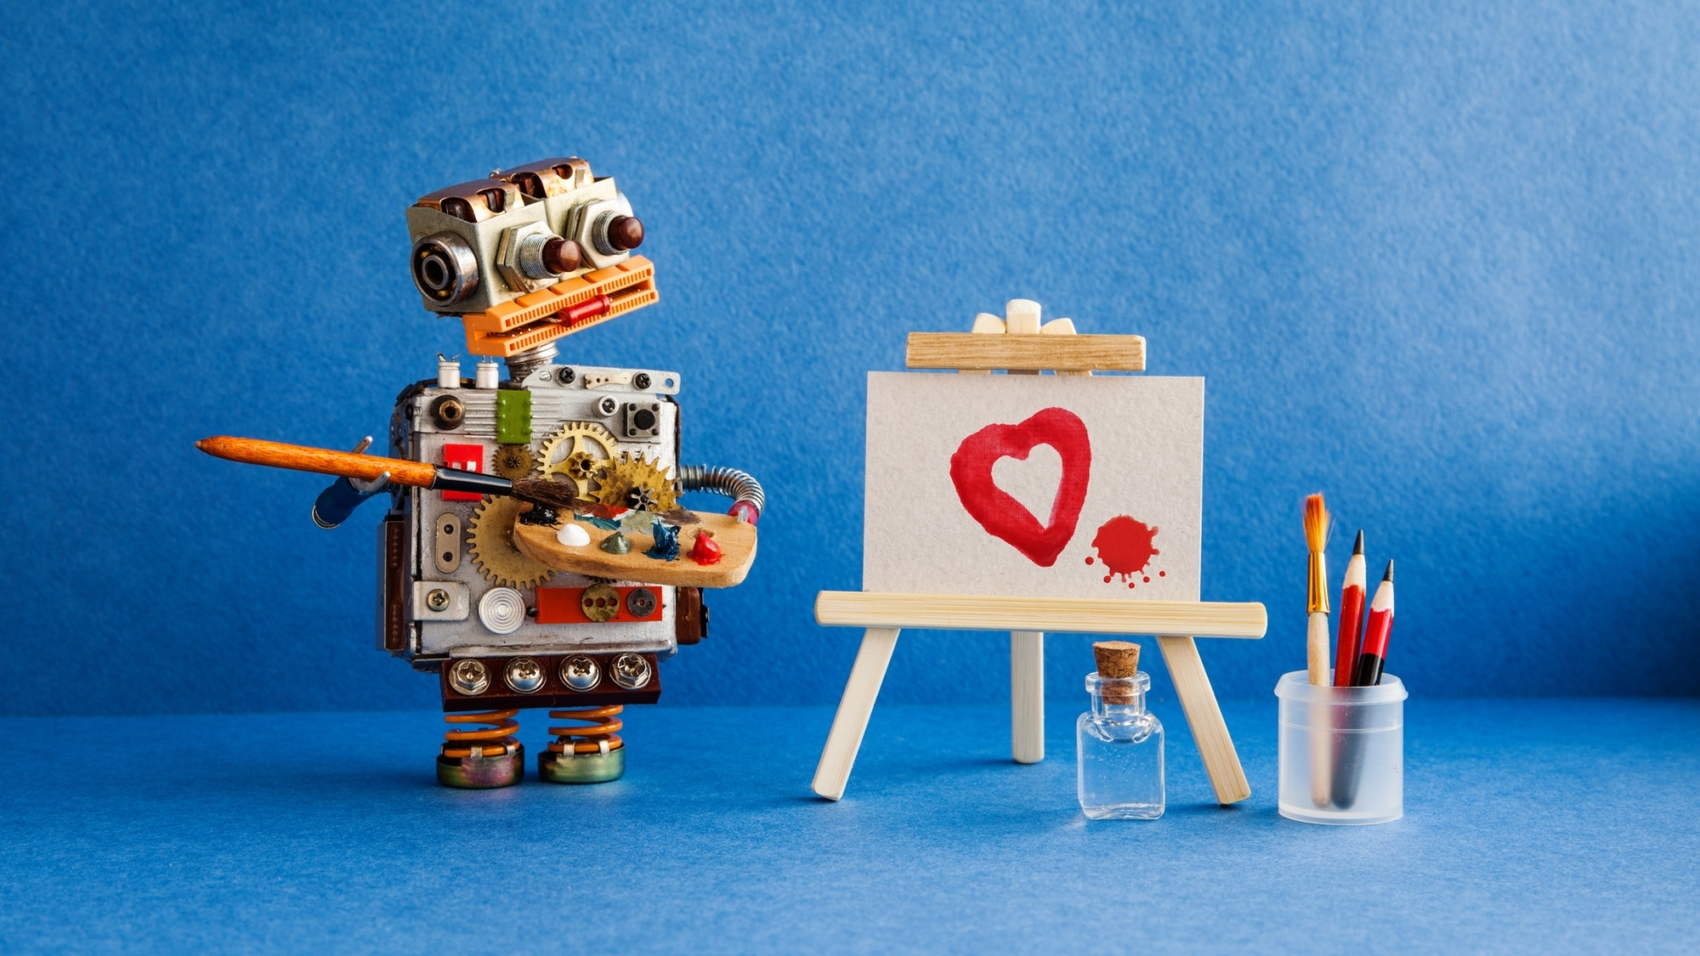 Robot artist with brush in hand looks at the red heart and a blot painted poster by Besjunior